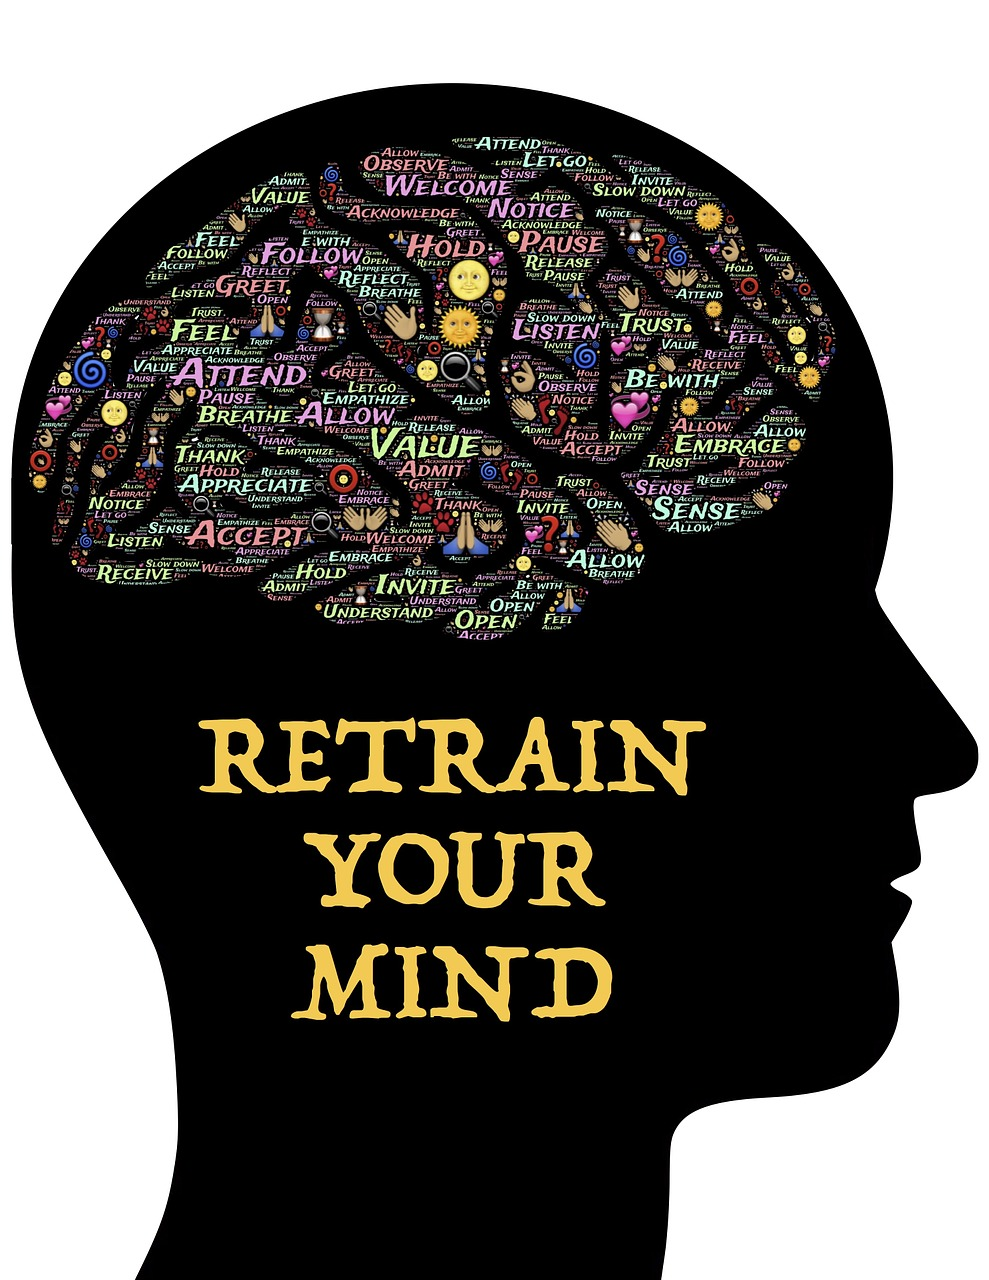 Understanding Your Subconscious Mind is key to training it